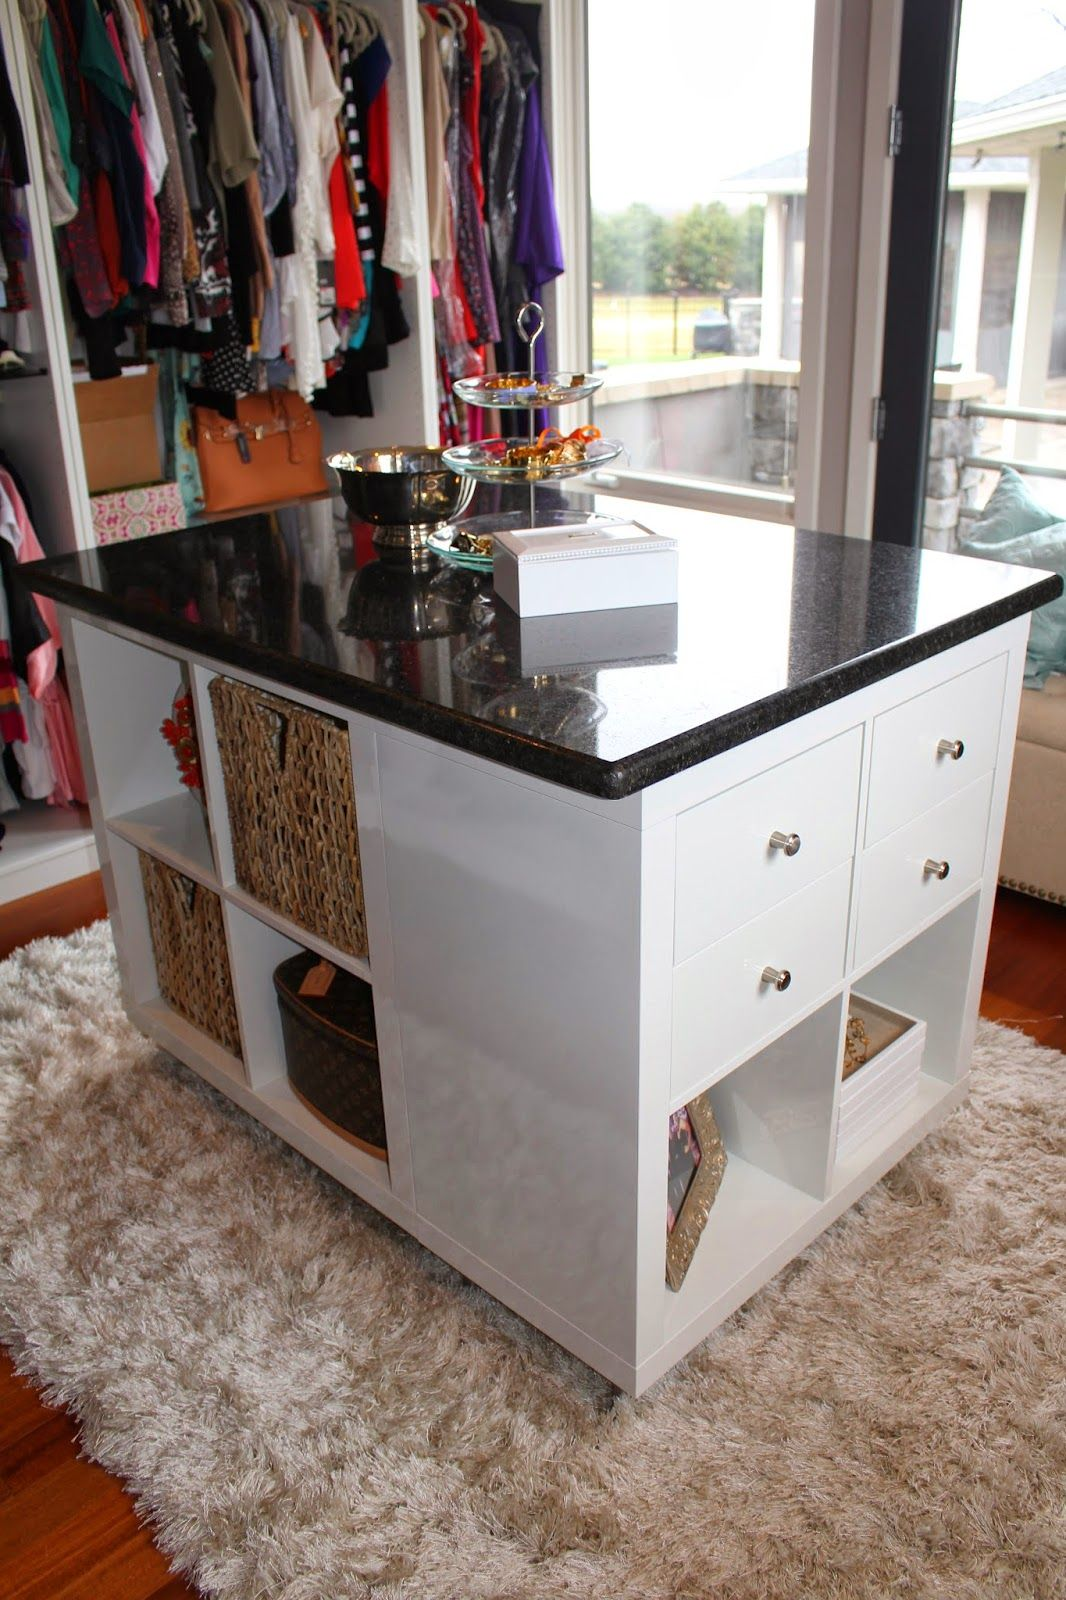 Ikea Hacks Kitchen Island Top 10 Furniture Hacks Easy Makeover Projects For The Weekend